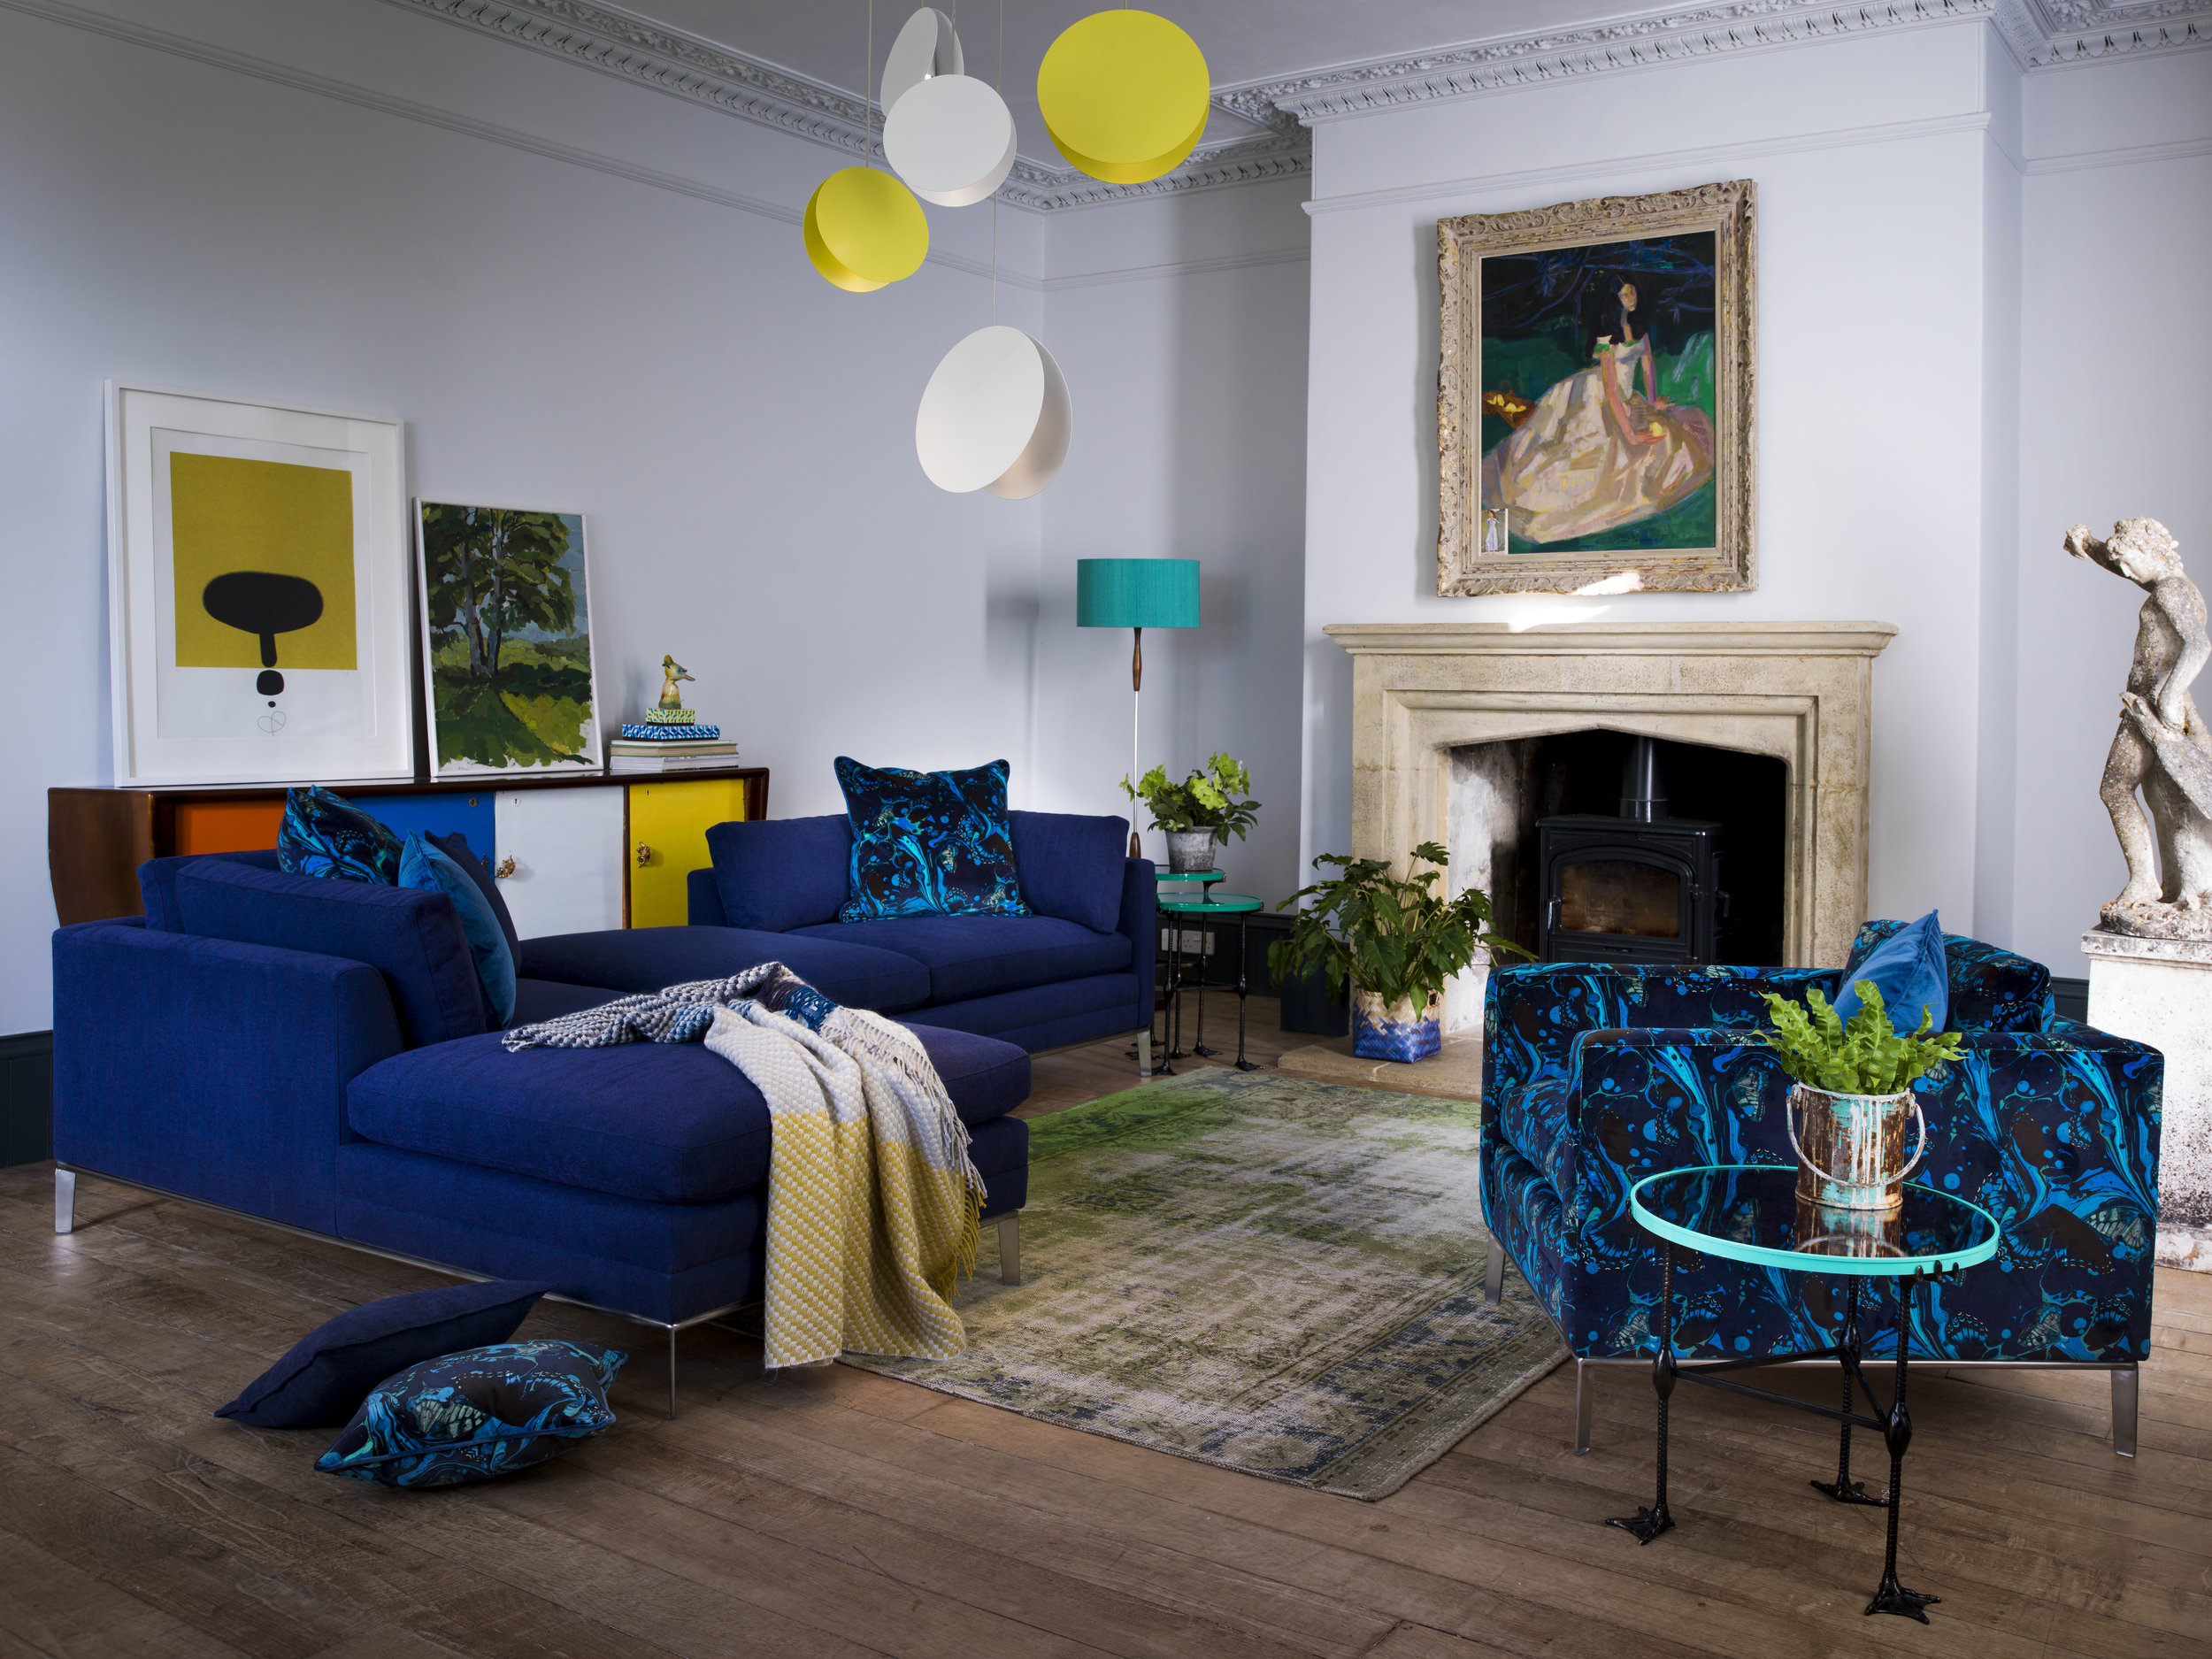 DURESTA-l-Two-Minnelli-Right-Arm-Units-in-Mistral-Blue-with-Marble-Butterfly-Electric-Blue-and-Estelle-Blue-Scatter-Cushions-Minelli-Chair-in-Marble-Butterfly-Electric-Blue.jpg